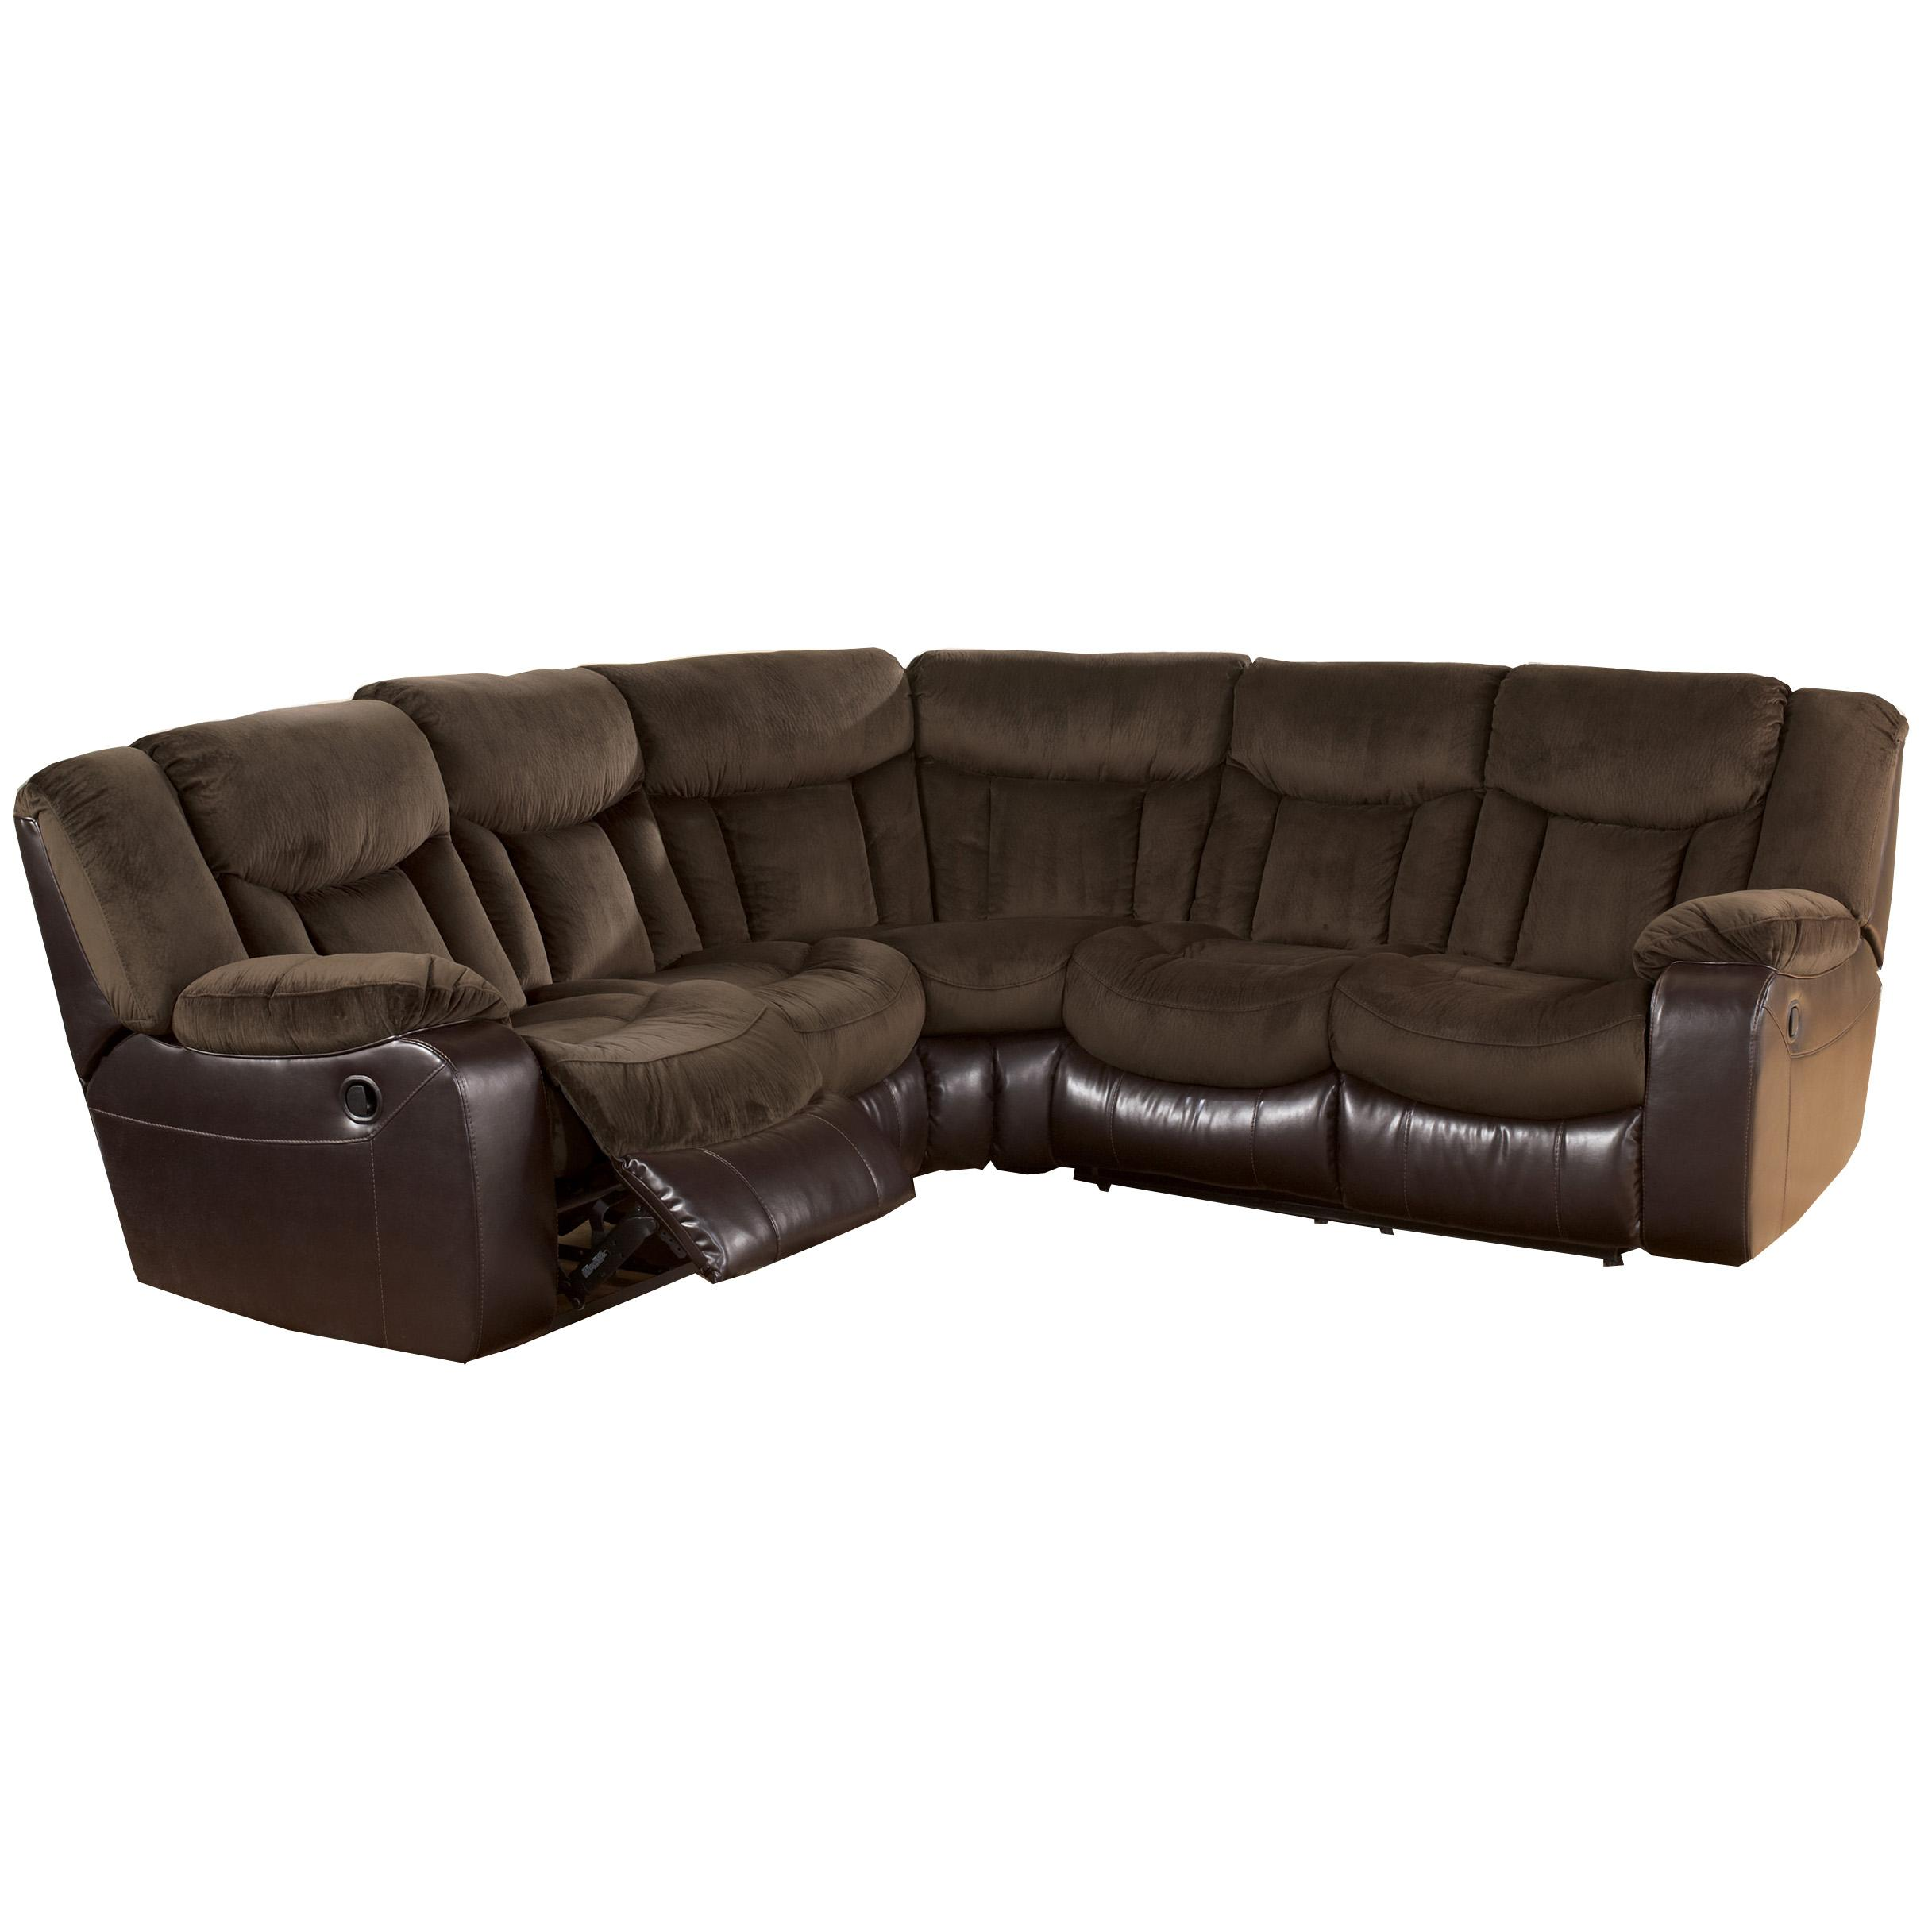 Signature Design by Ashley Tafton - Java Double Reclining Two Loveseat Sectional - Item Number: 7920248+7920249